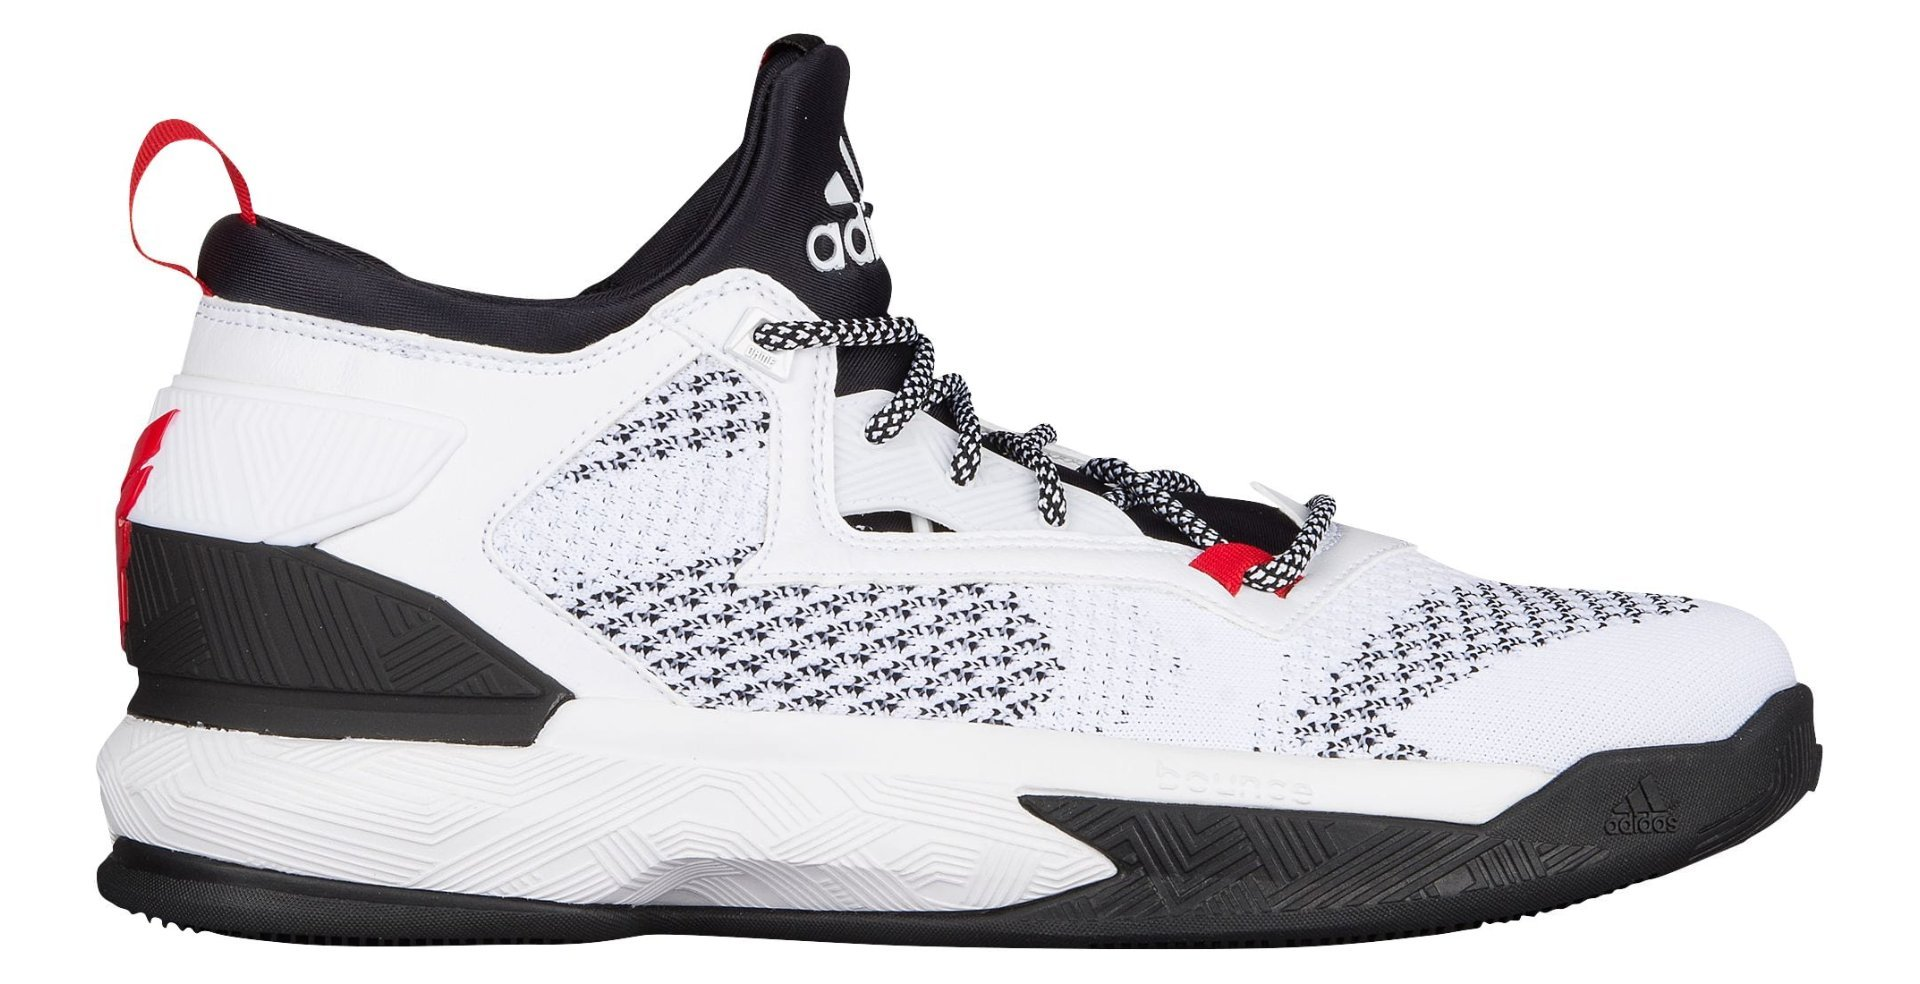 2c267c865bc65 adidas D Lillard 2 Primeknit Basketball Shoes (13, White/Black/Scarlet)